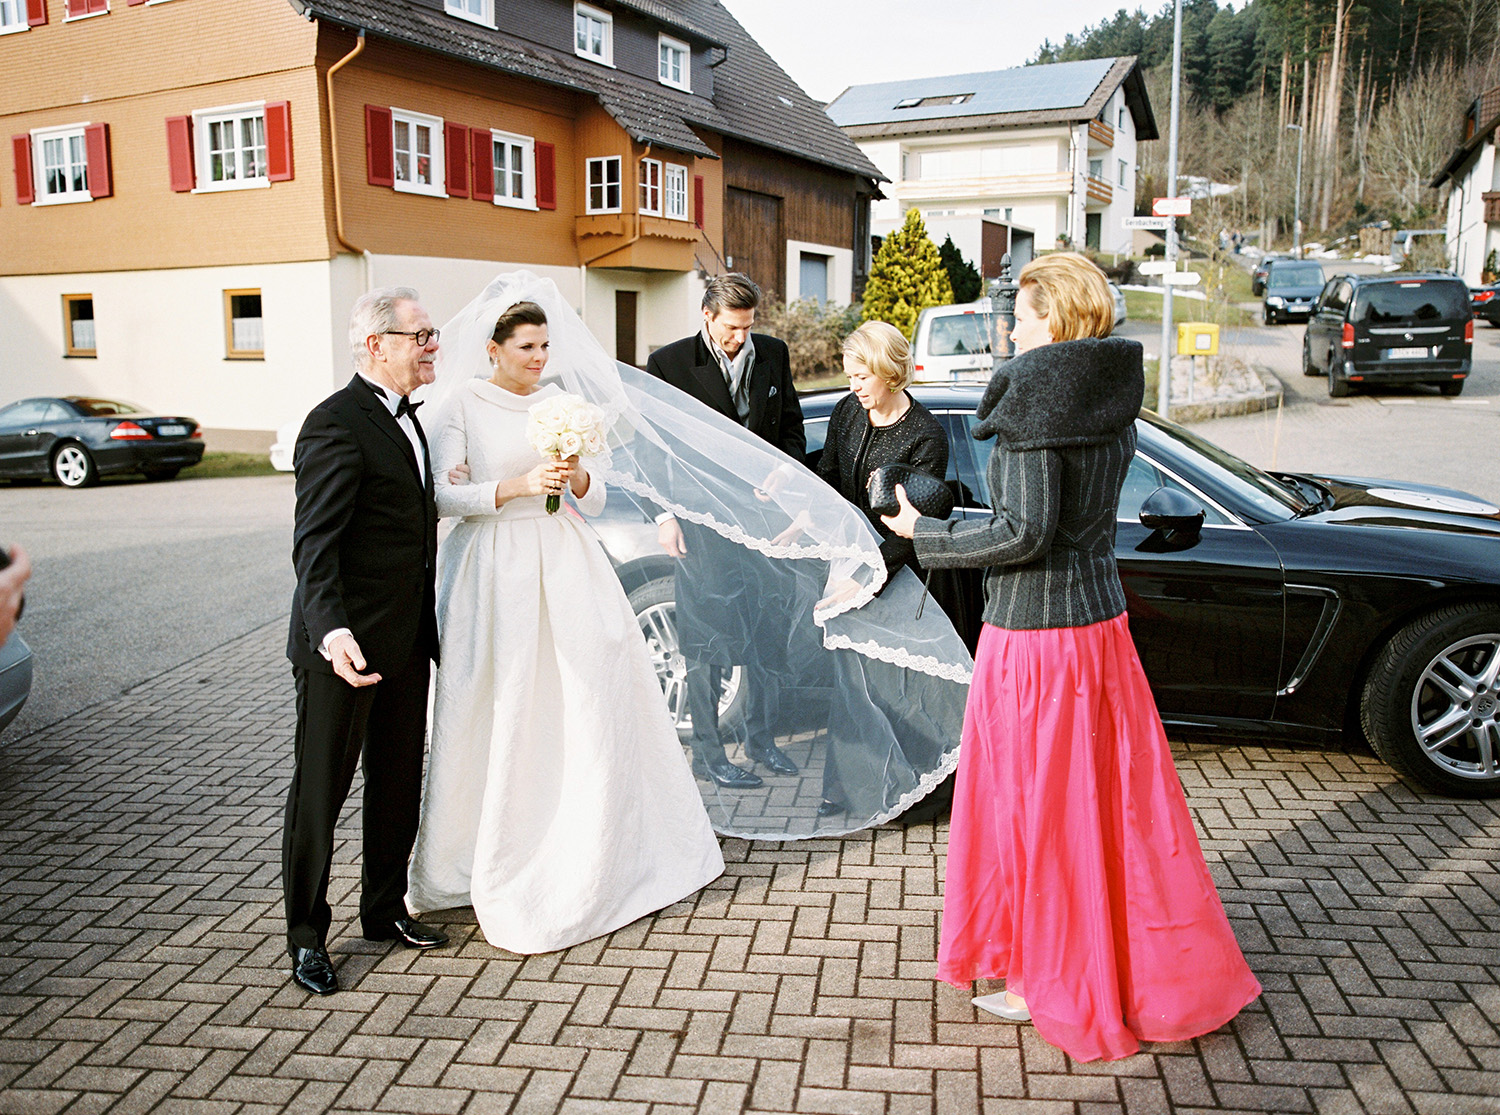 Fotograf Konstanz - Hochzeit Stephanie Stefan Baiersbronn Bareiss Elmar Feuerbacher Photography 34 - Noble winter wedding in Baiersbronn in Bareiss  - 107 -